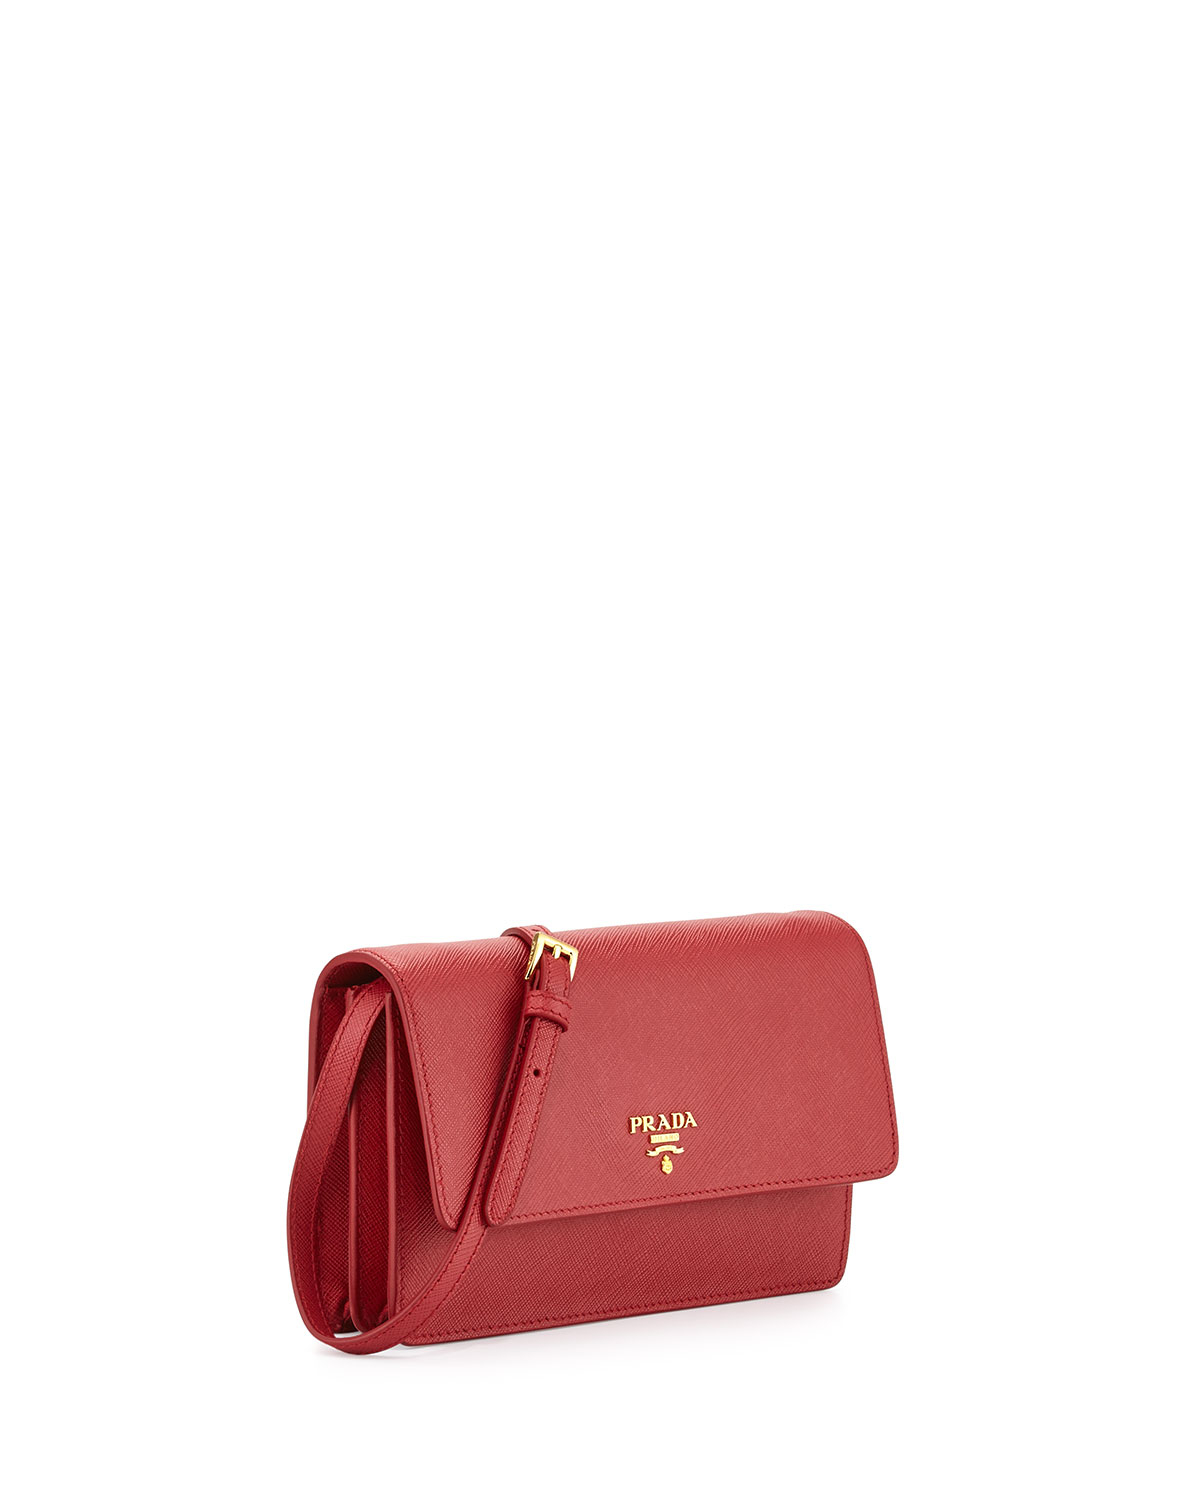 where can i buy lyst prada wallet on a chain velvet shoulder bag in red  5577e 5d3e8f4e8aa92